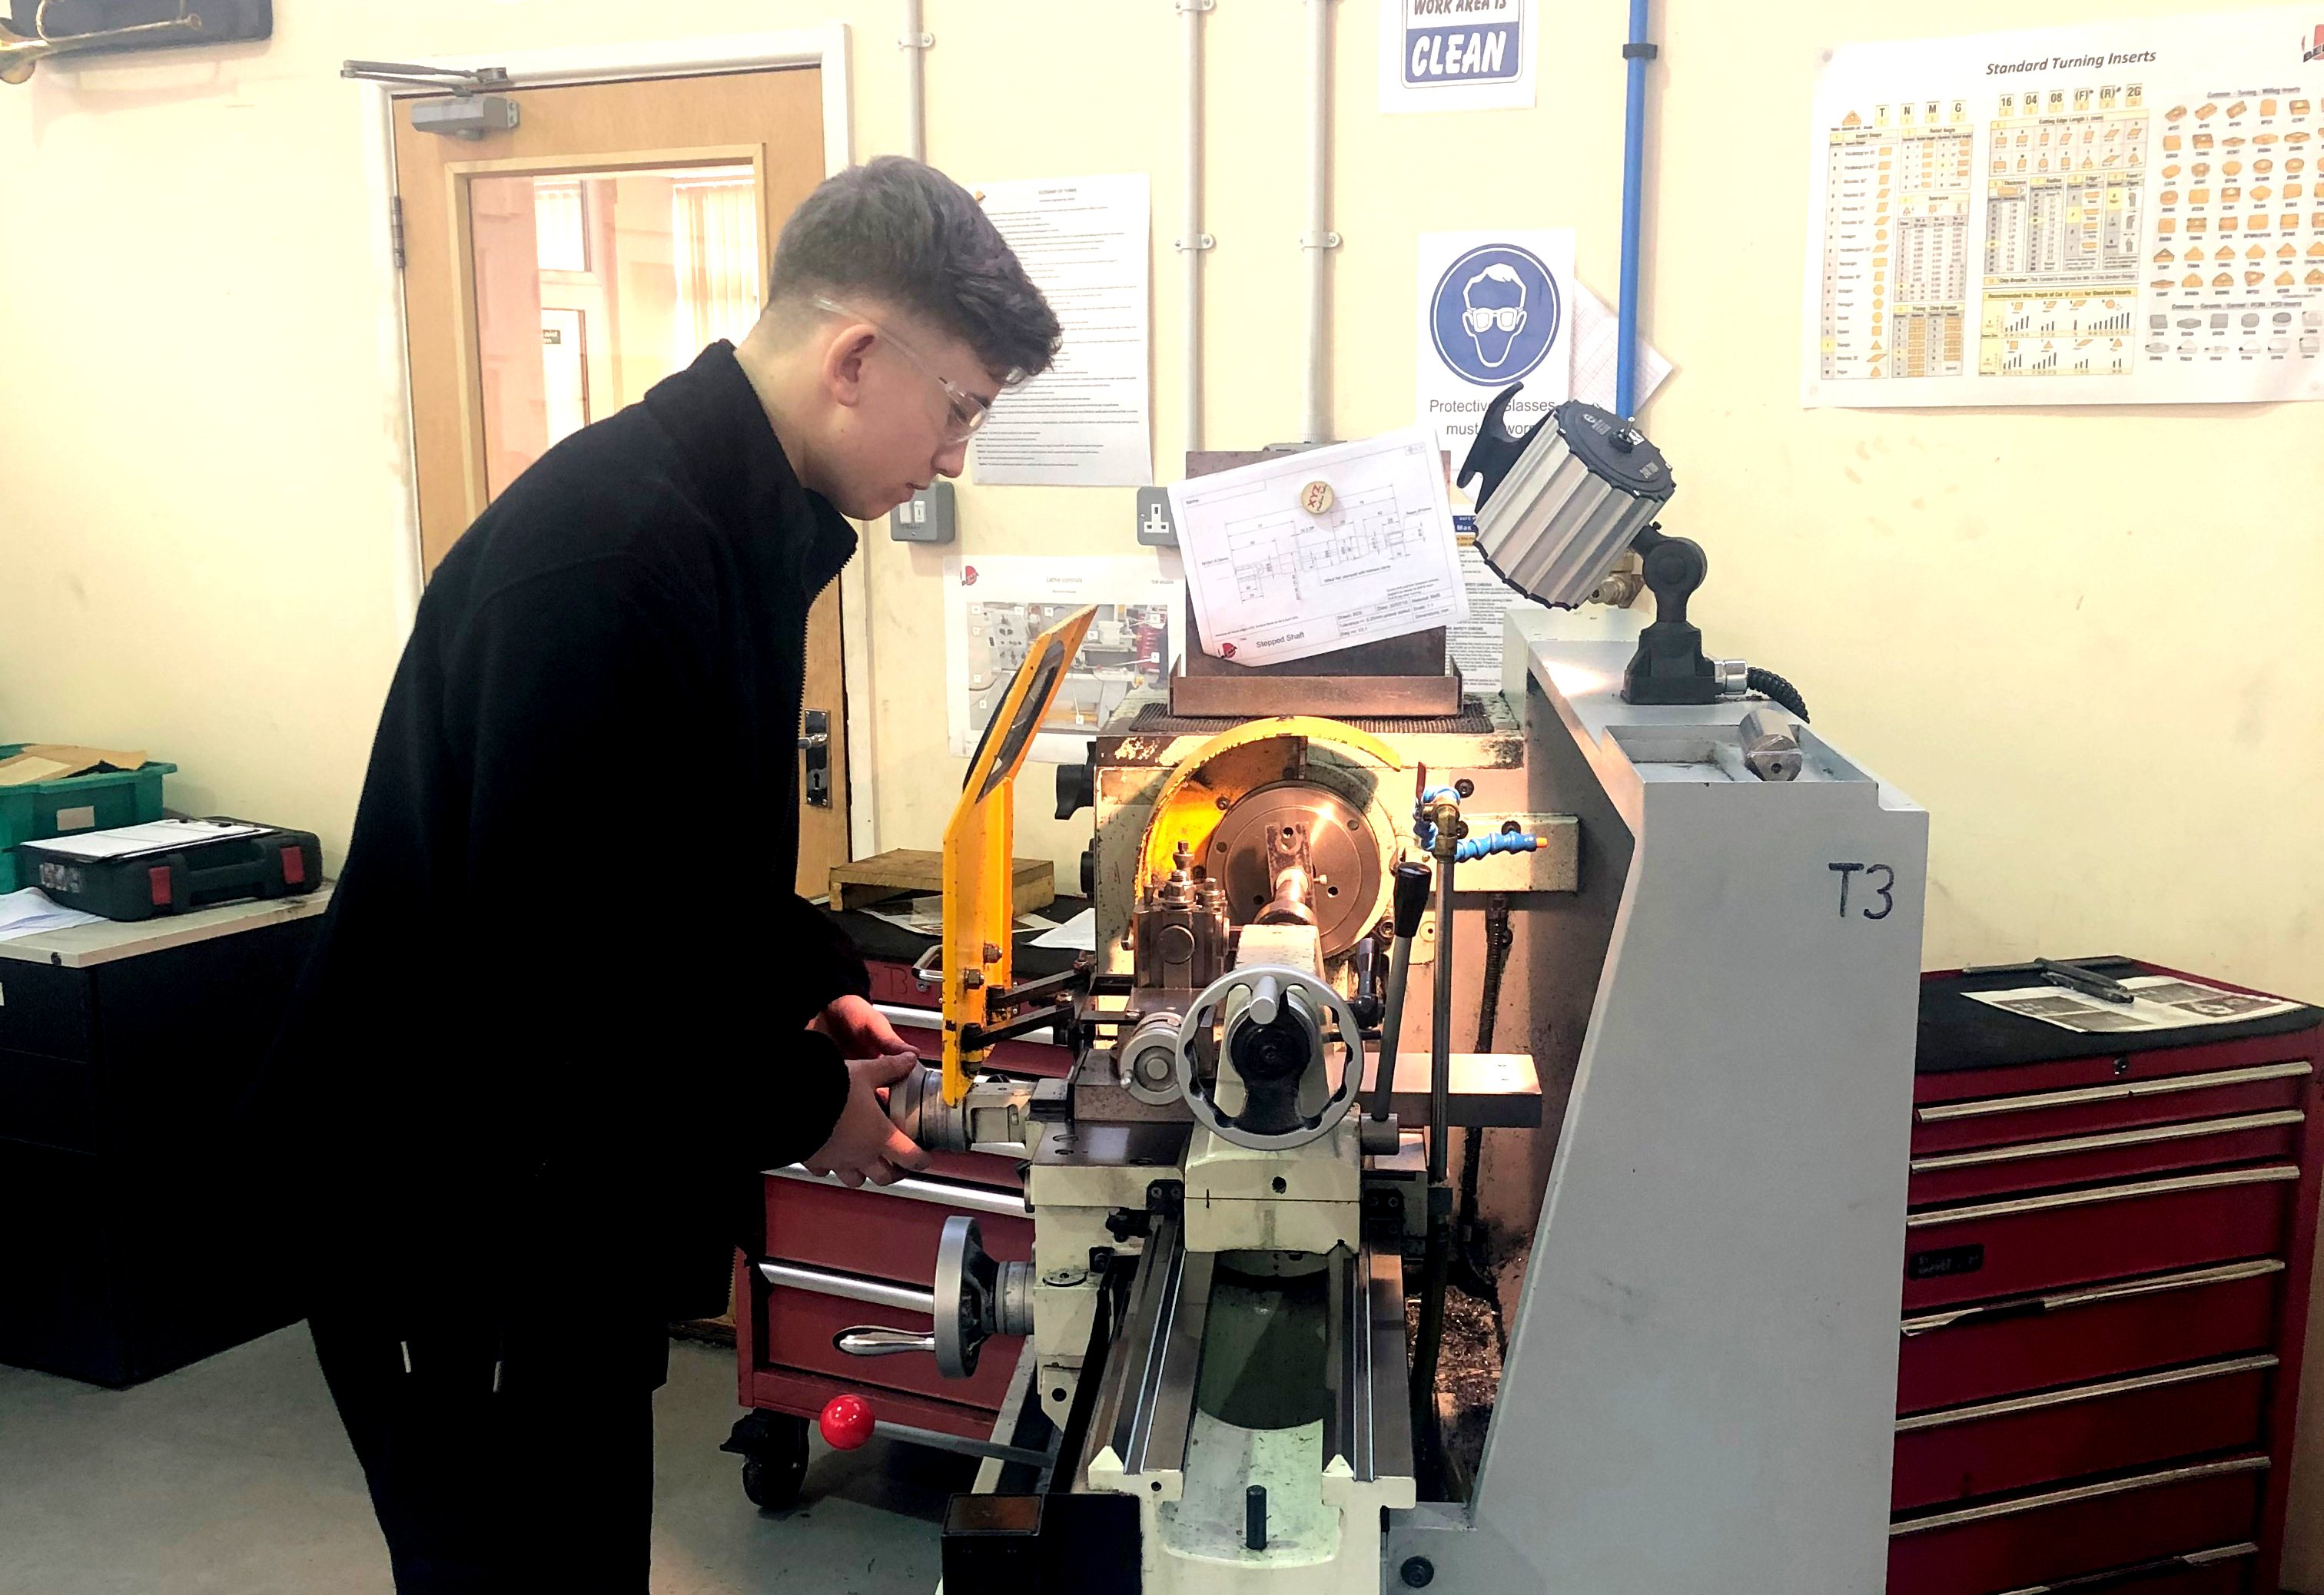 Harri is learning more as an Apprentice